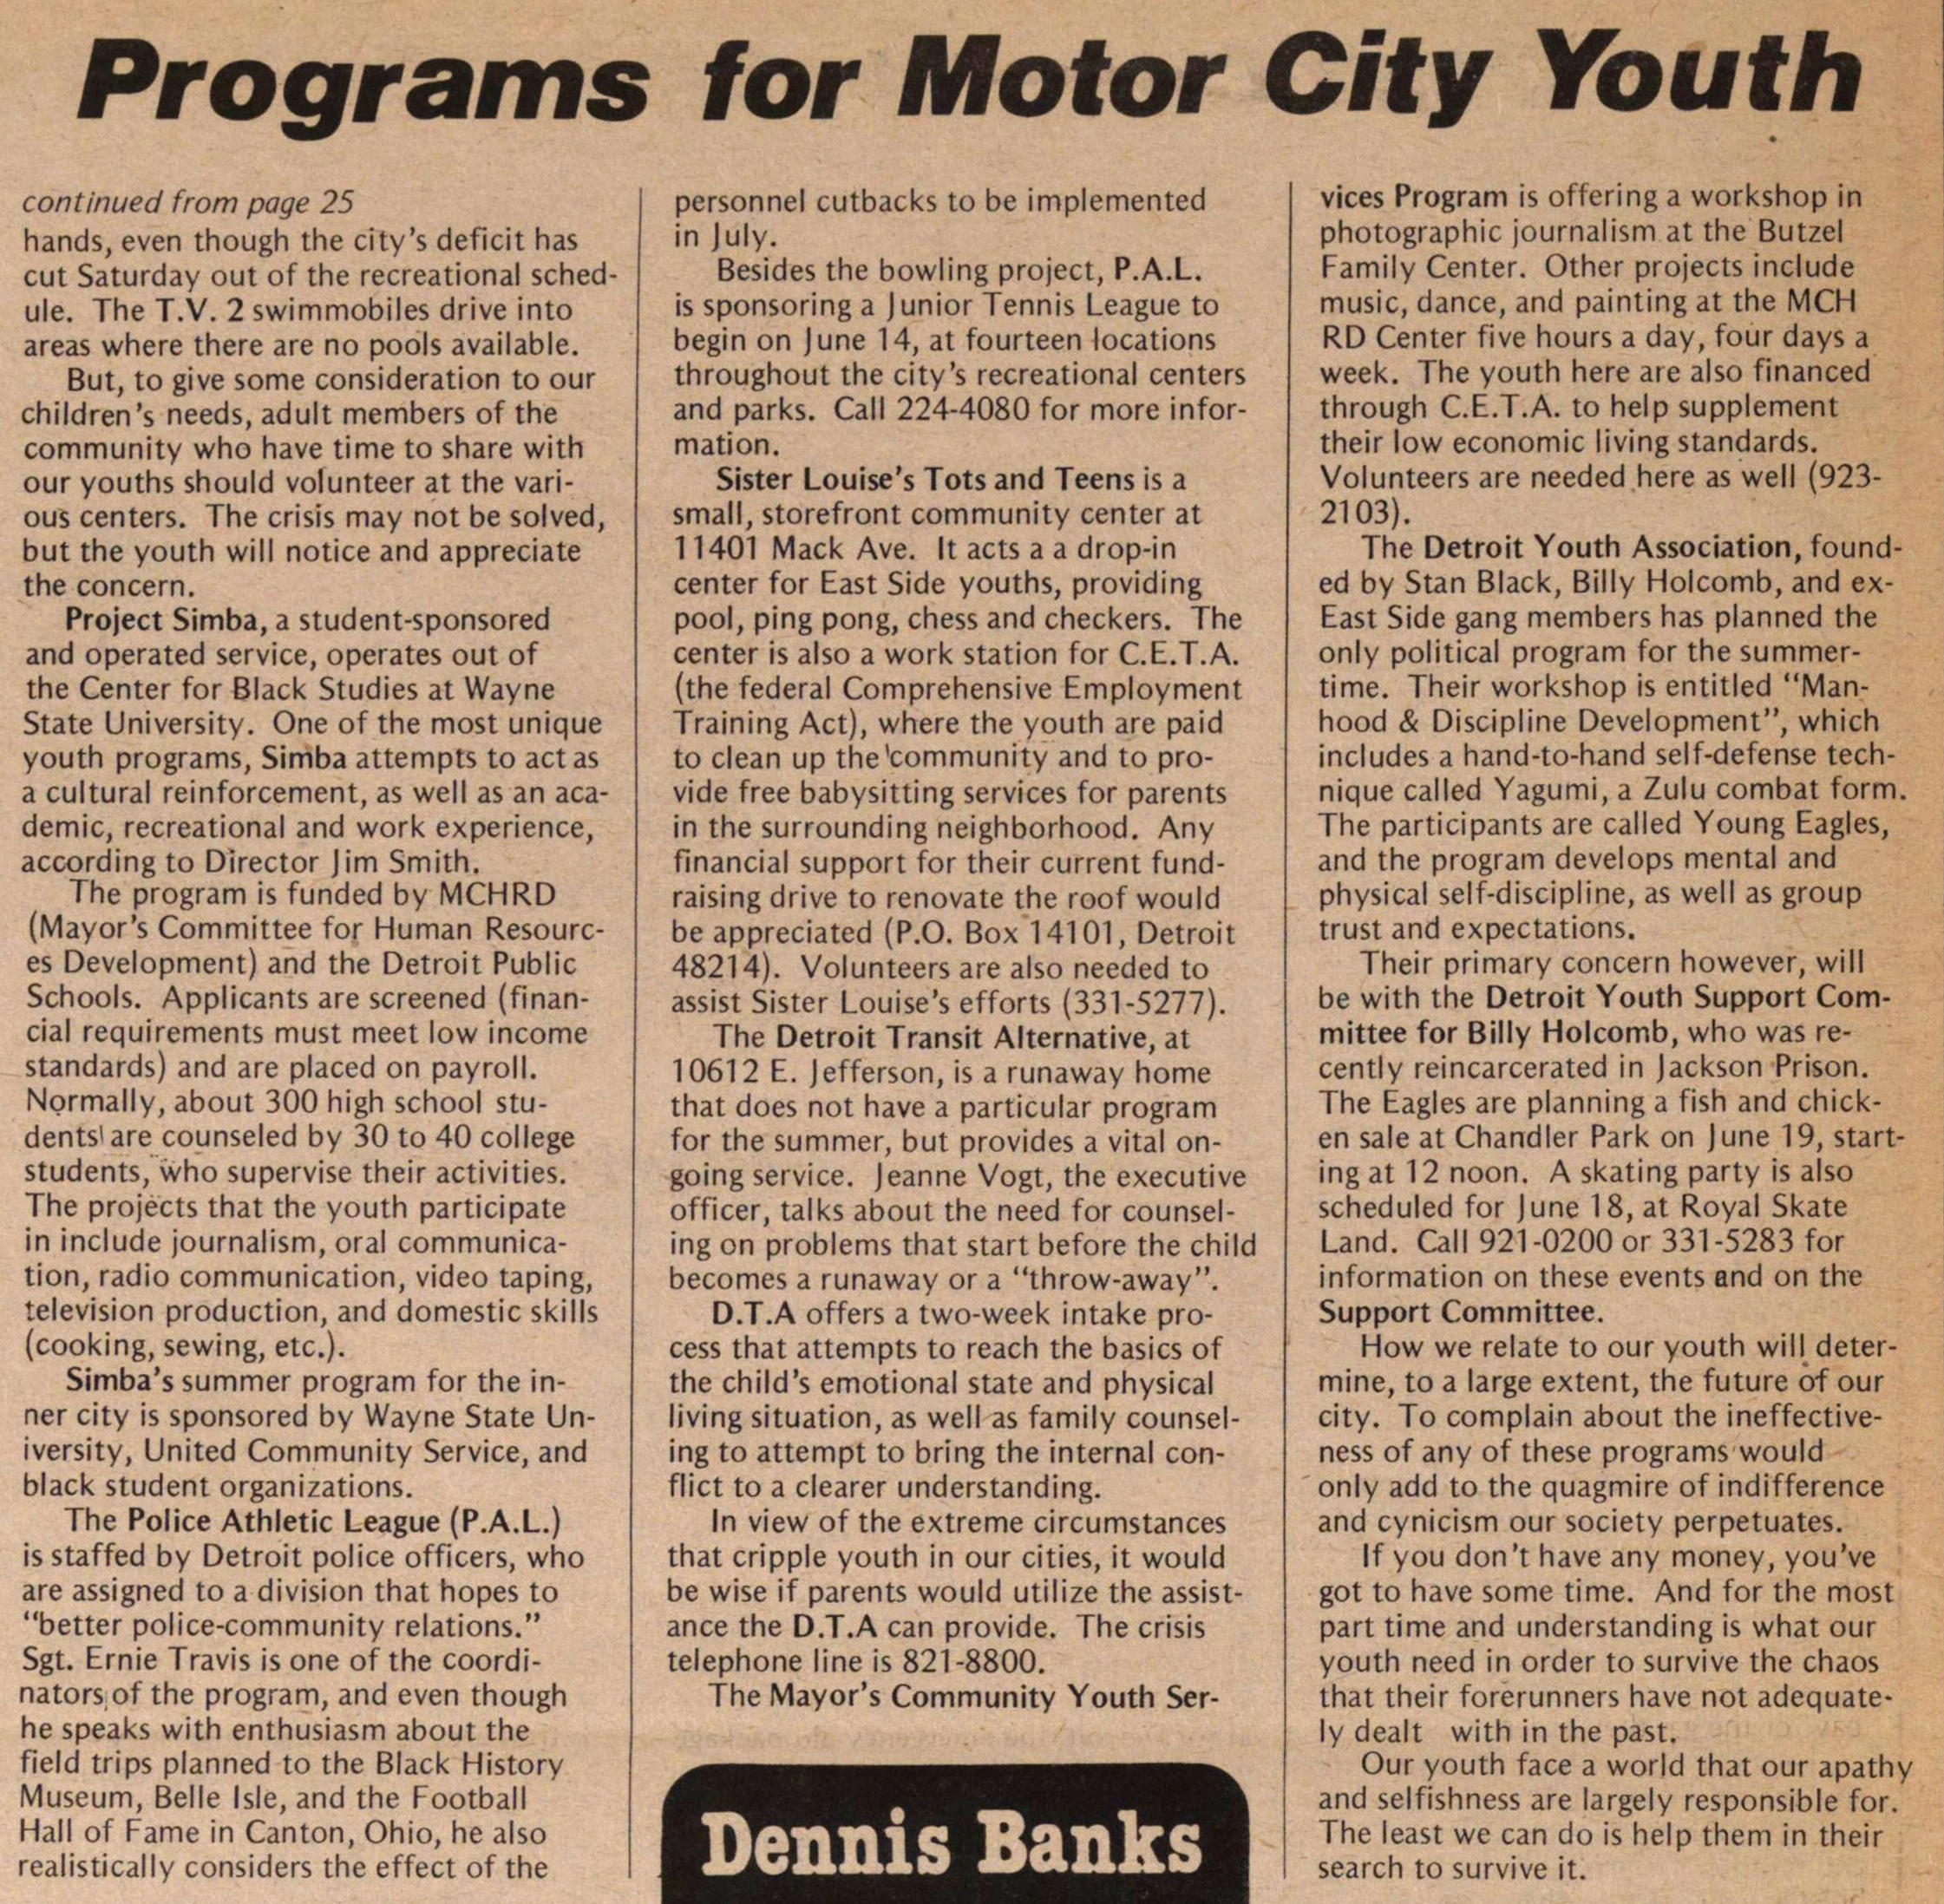 Programs For Motor City Youth image